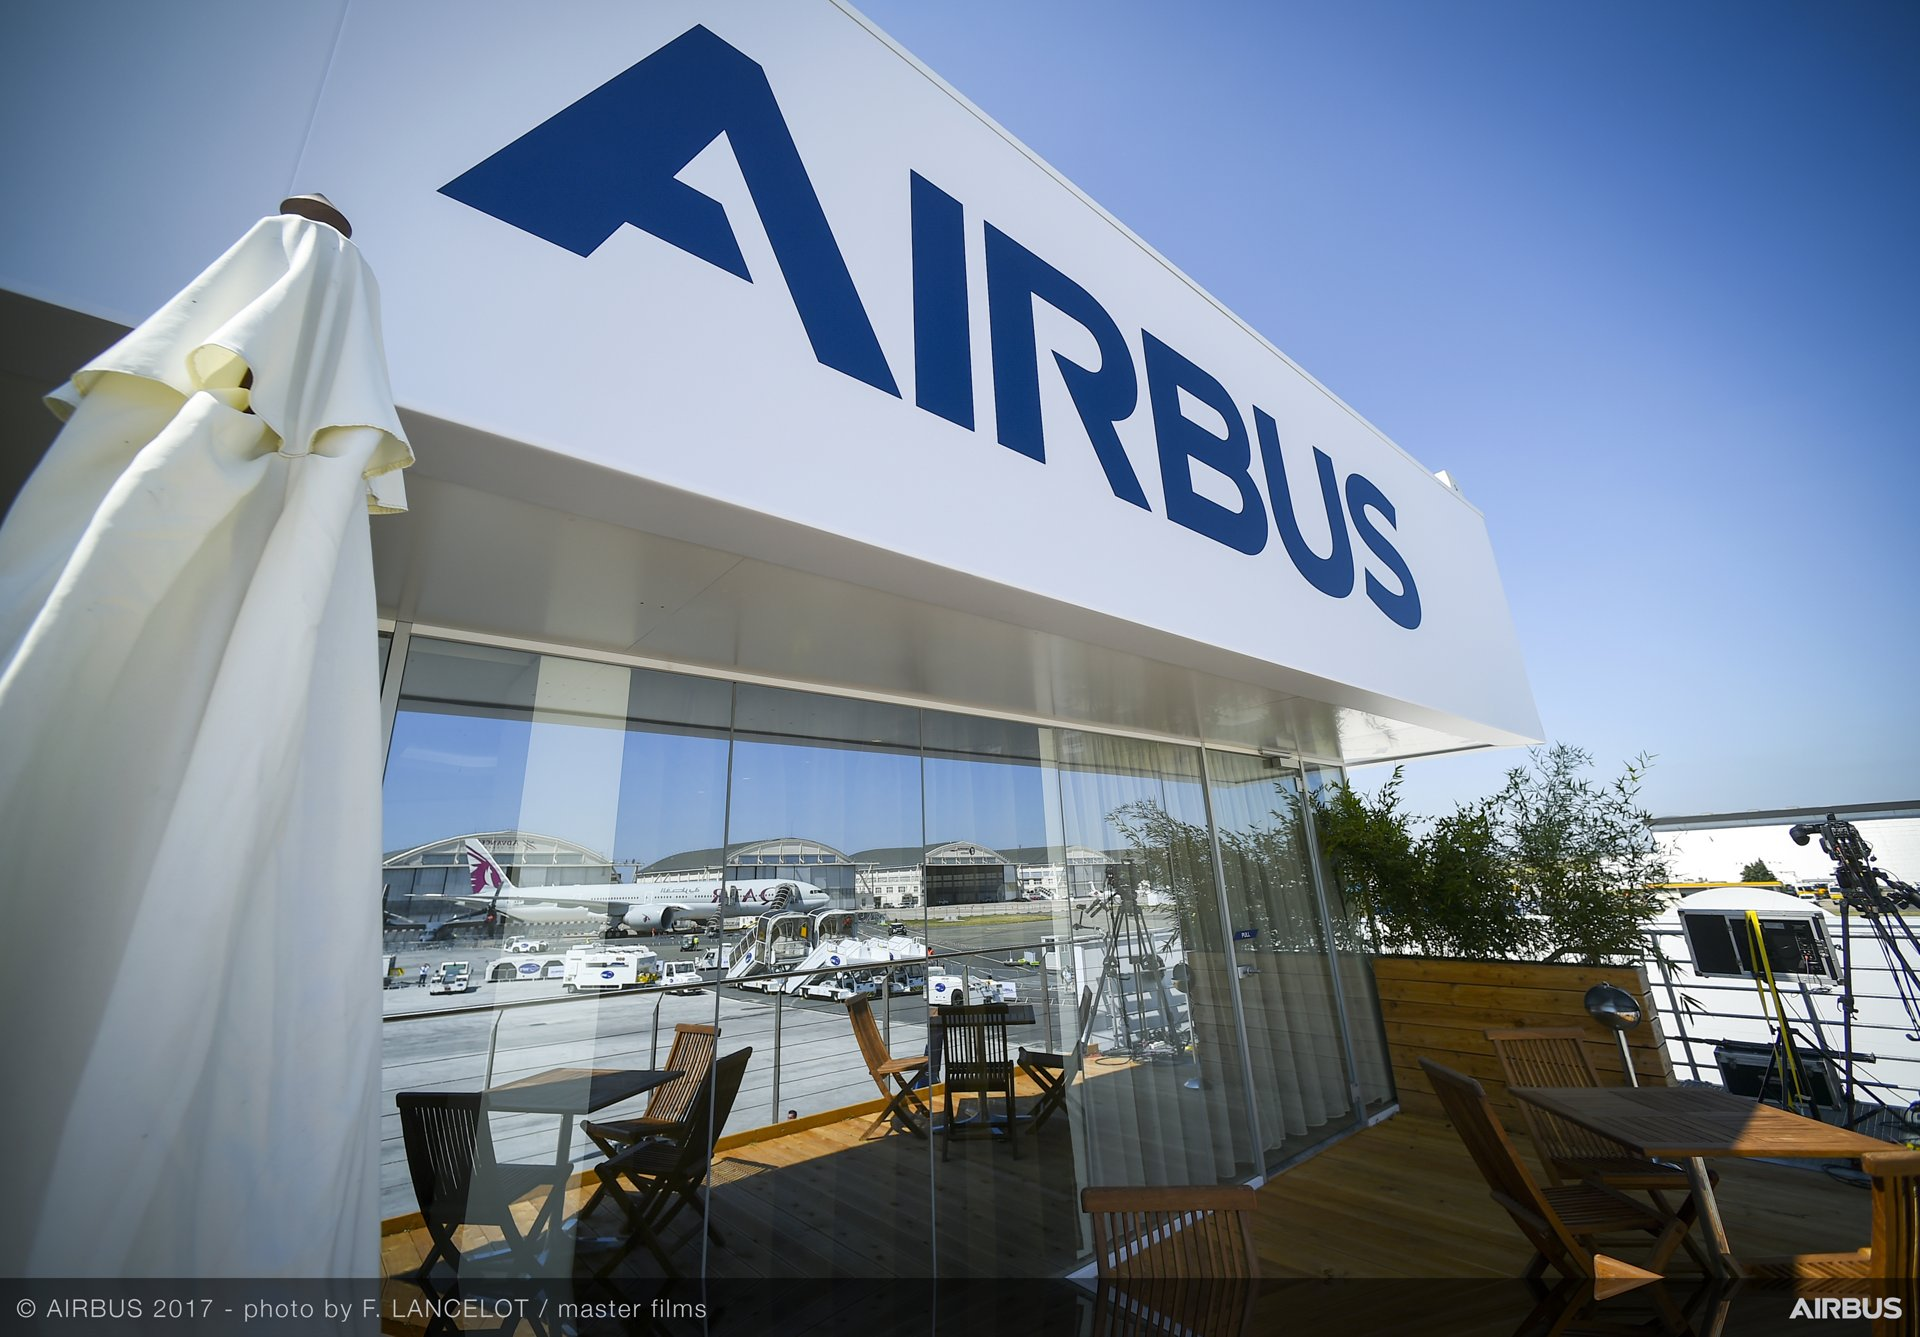 AIRBUS Ambiance Day0 PAS2017